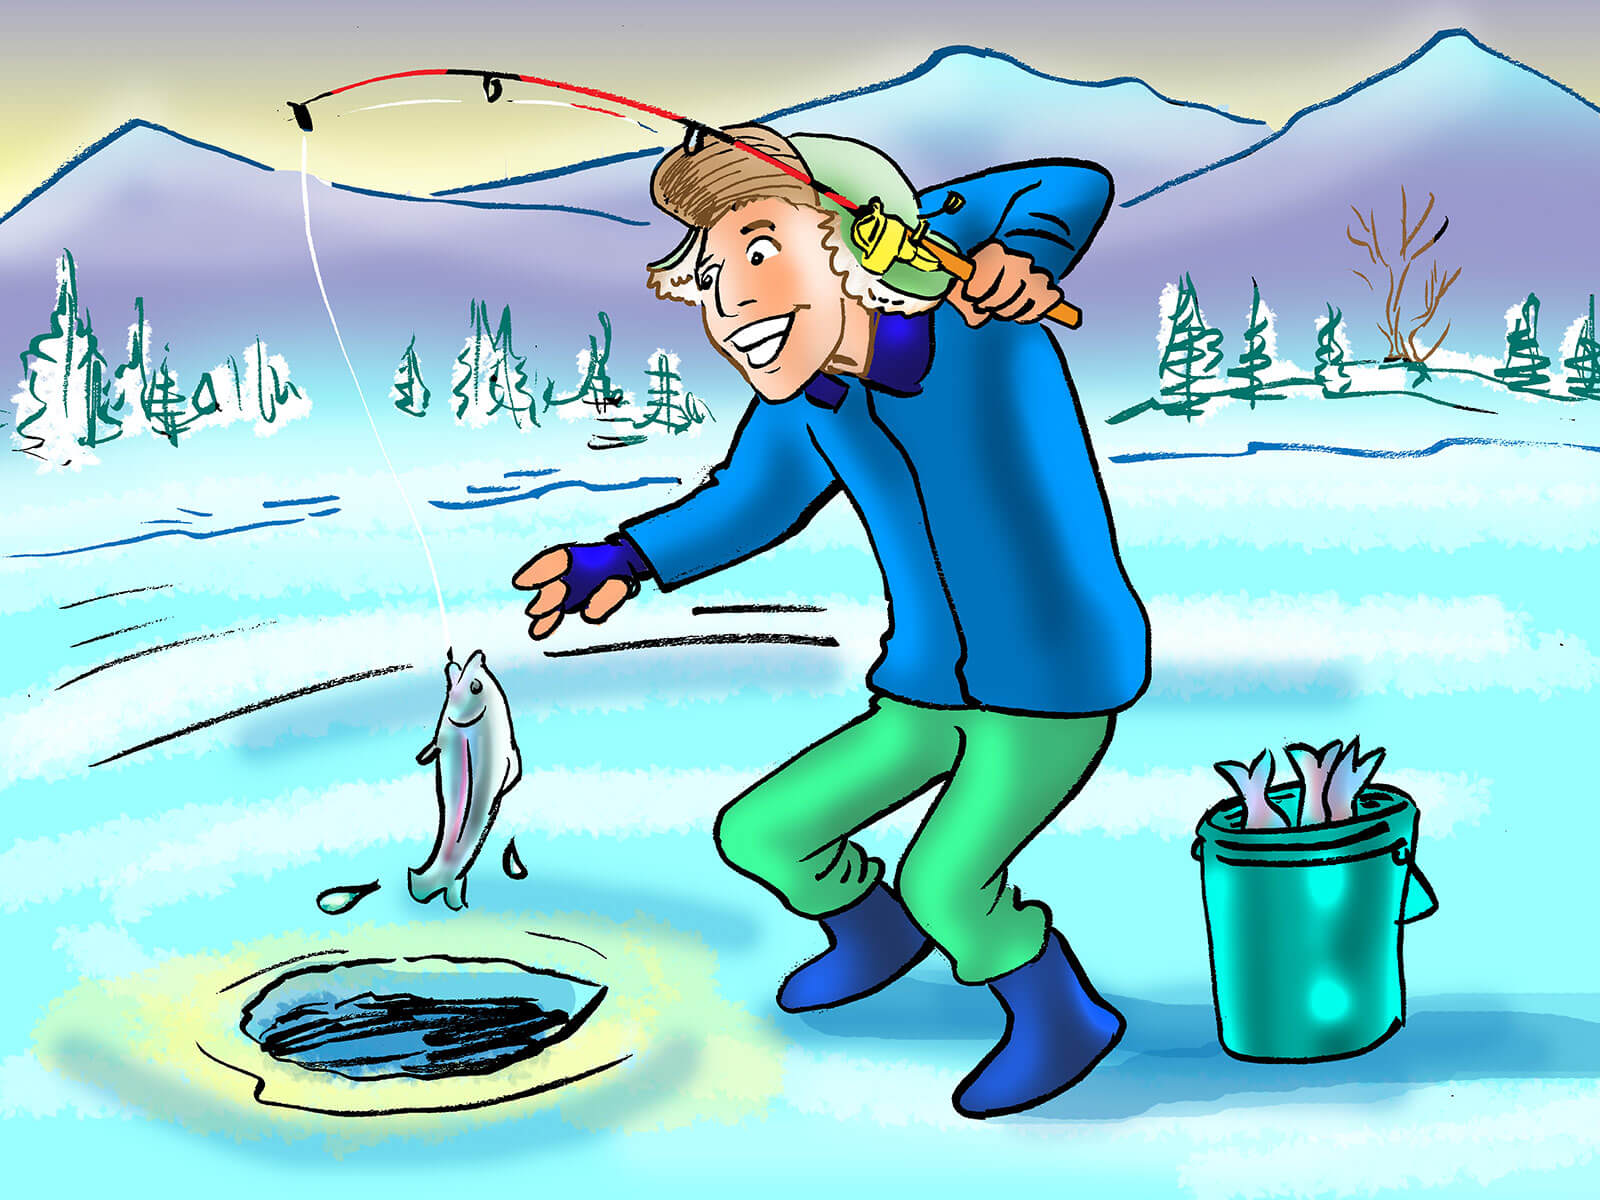 drawing art: ice fishing